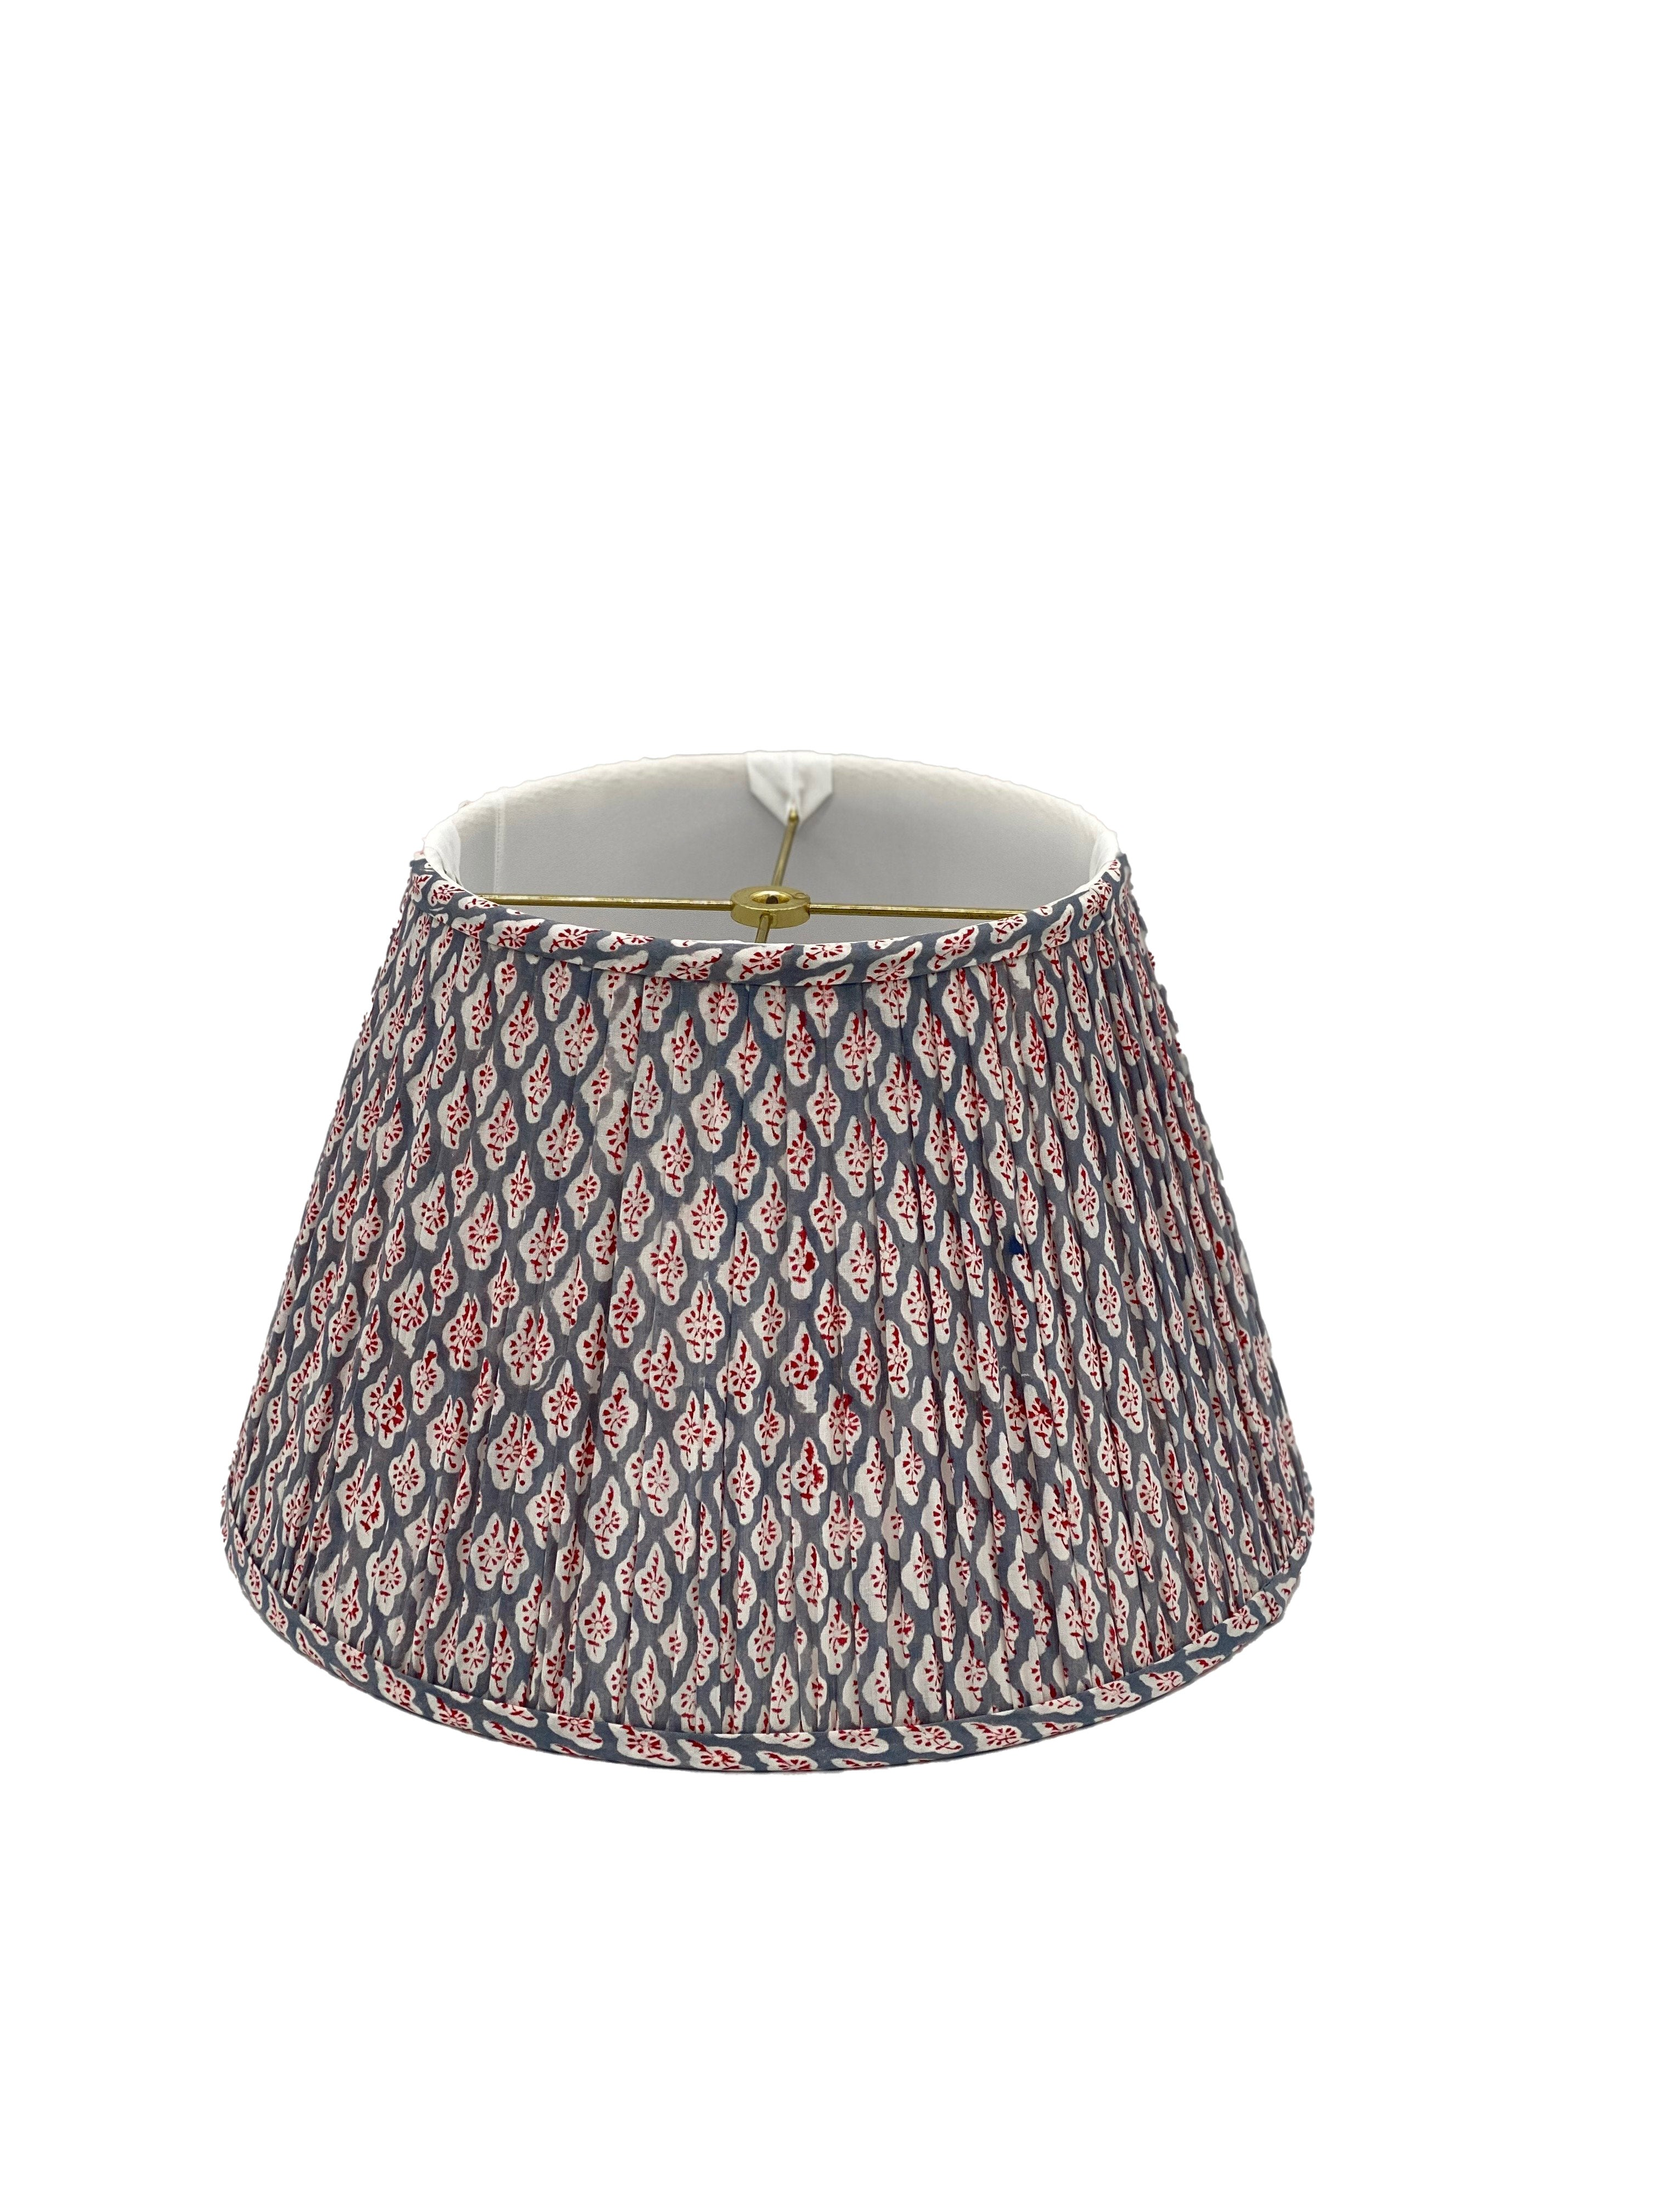 Gathered Gray/Red/White Empire Lampshade